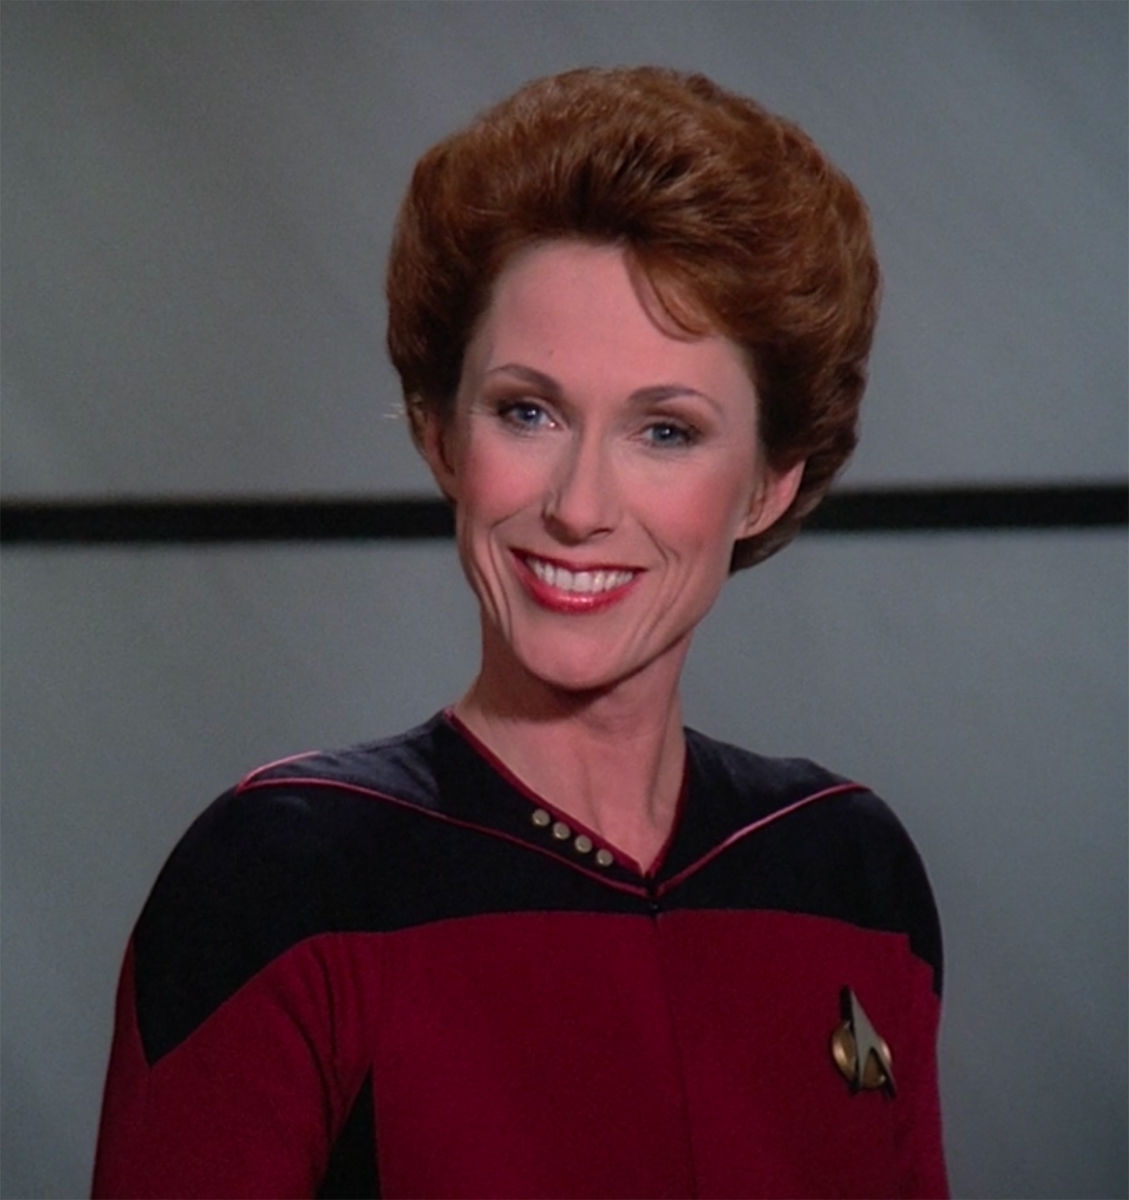 """Star Trek connection, What \""""Trump\"""" Means in the UK, and more in Yet Another 10 Quick Facts"""